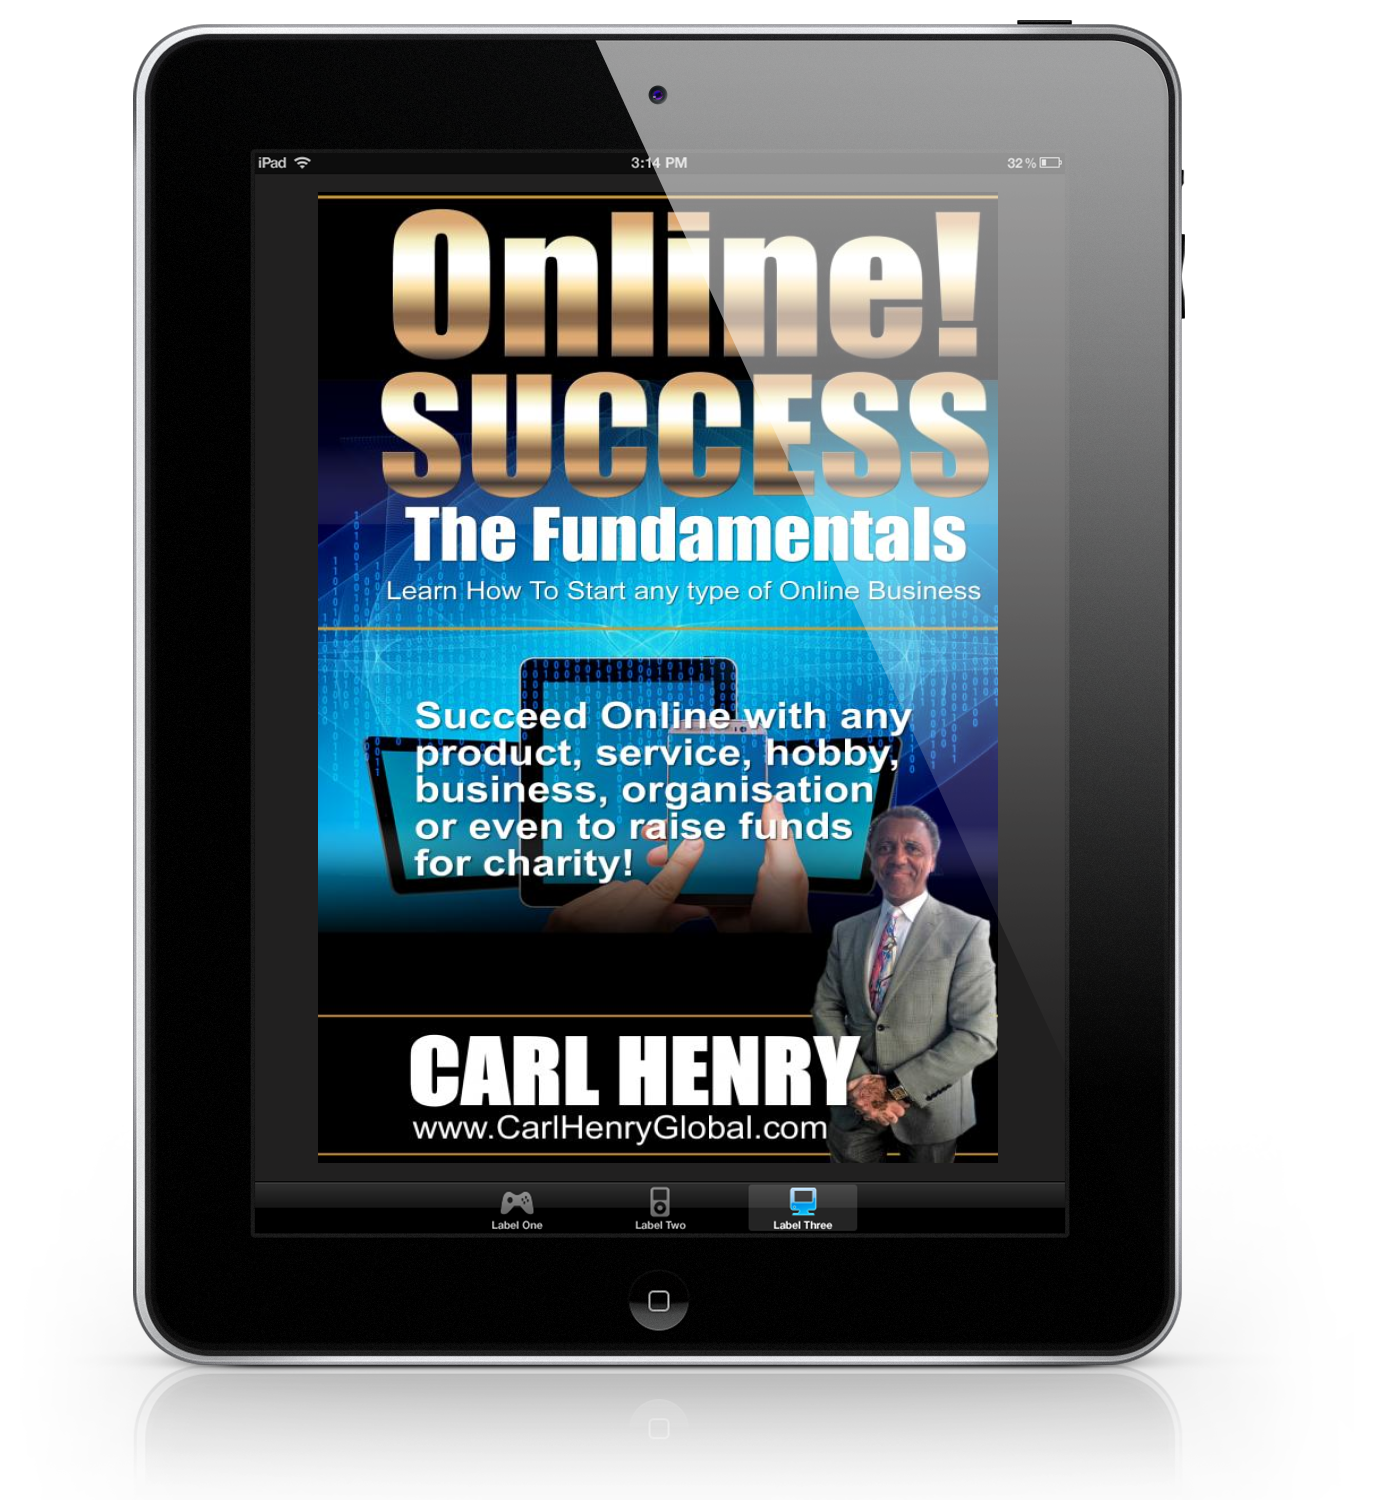 Carl-Henry-ONLINE-SUCCESS-iPad-1400x1500.png